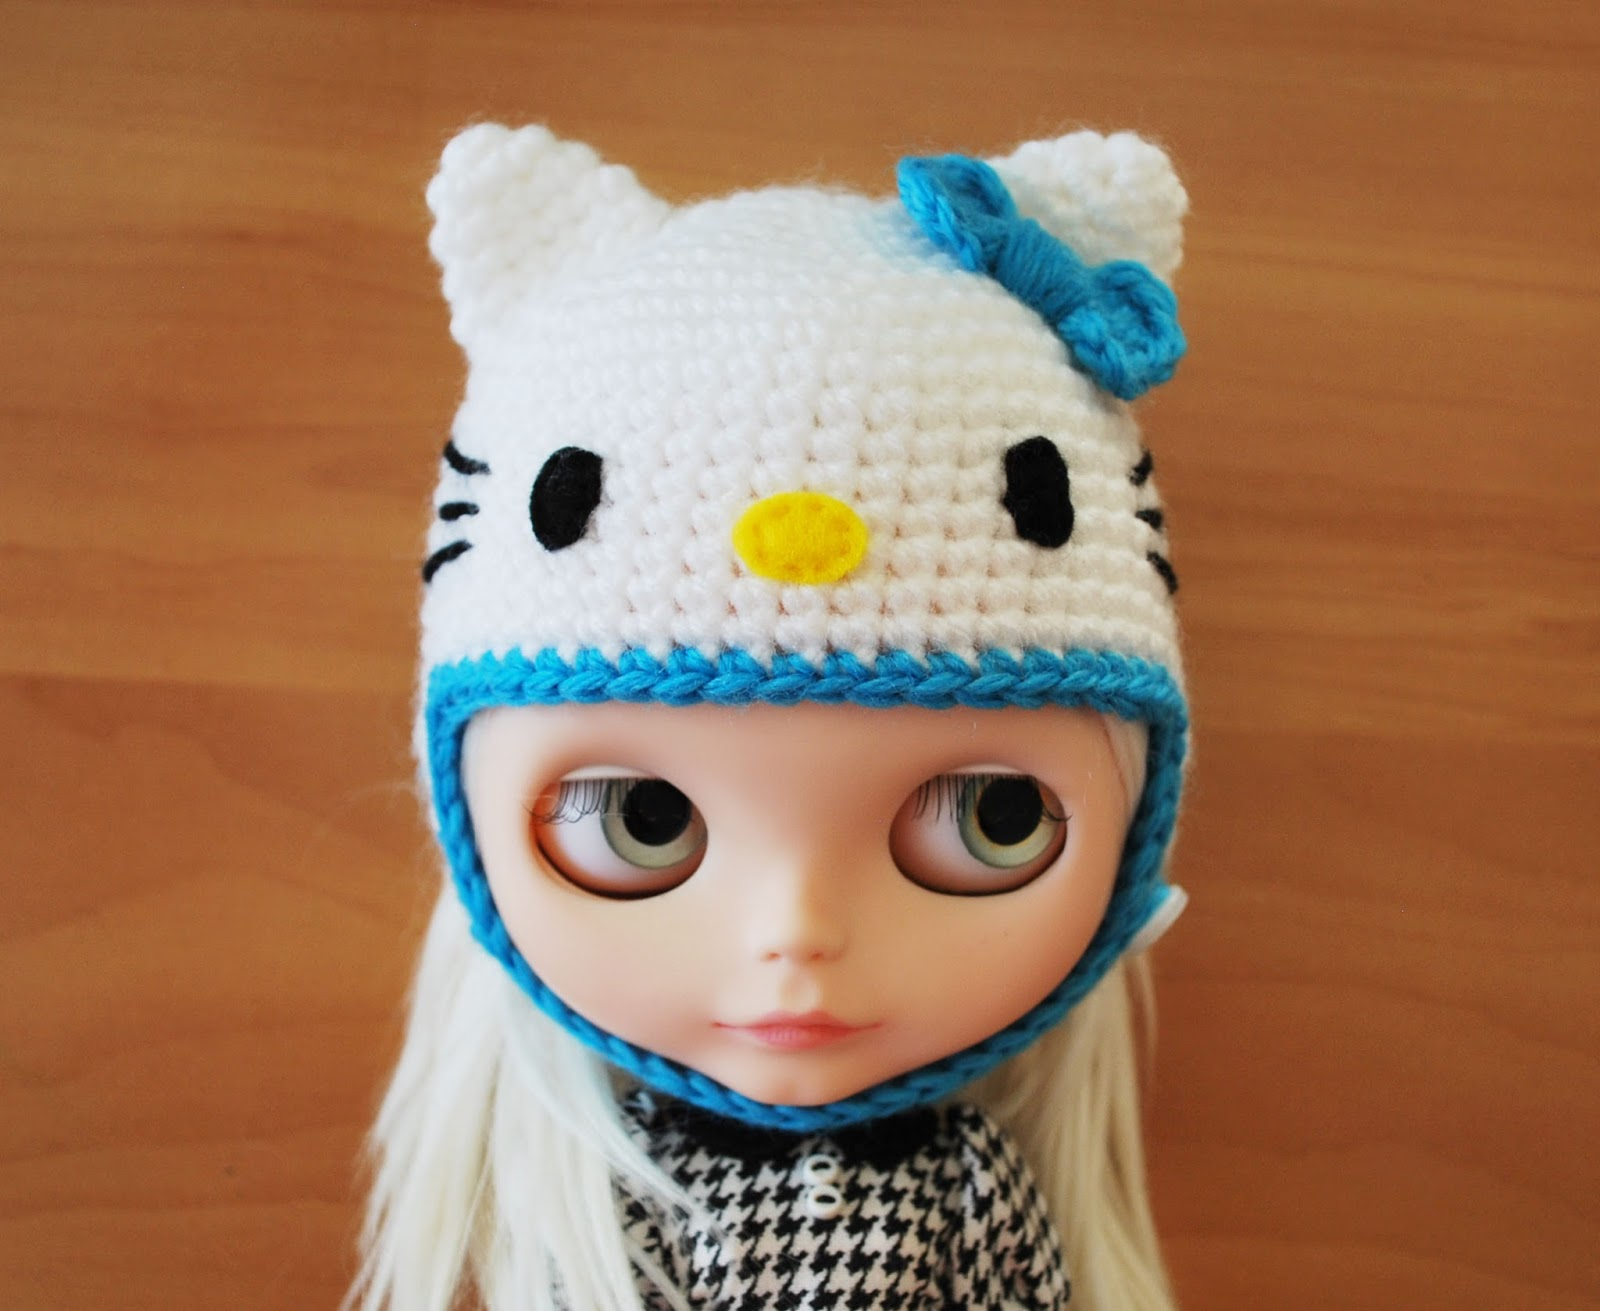 Sheree Forcier Blog: New Crochet Hello Kitty Hats!